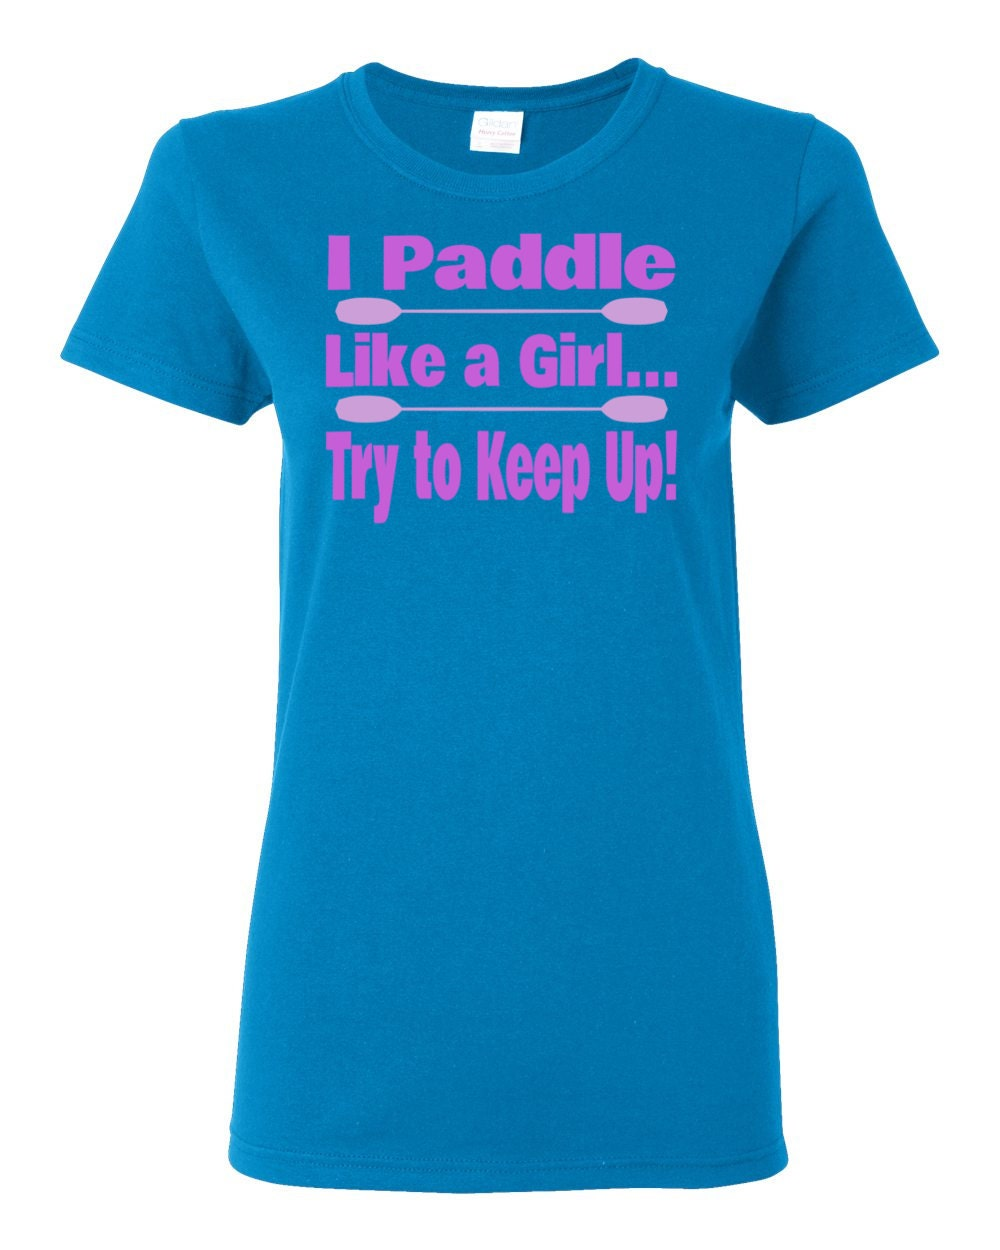 Kayak T-shirt - I Paddle Like A Girl... Try To Keep Up - Paddle Life Kayaking Womens T-shirt